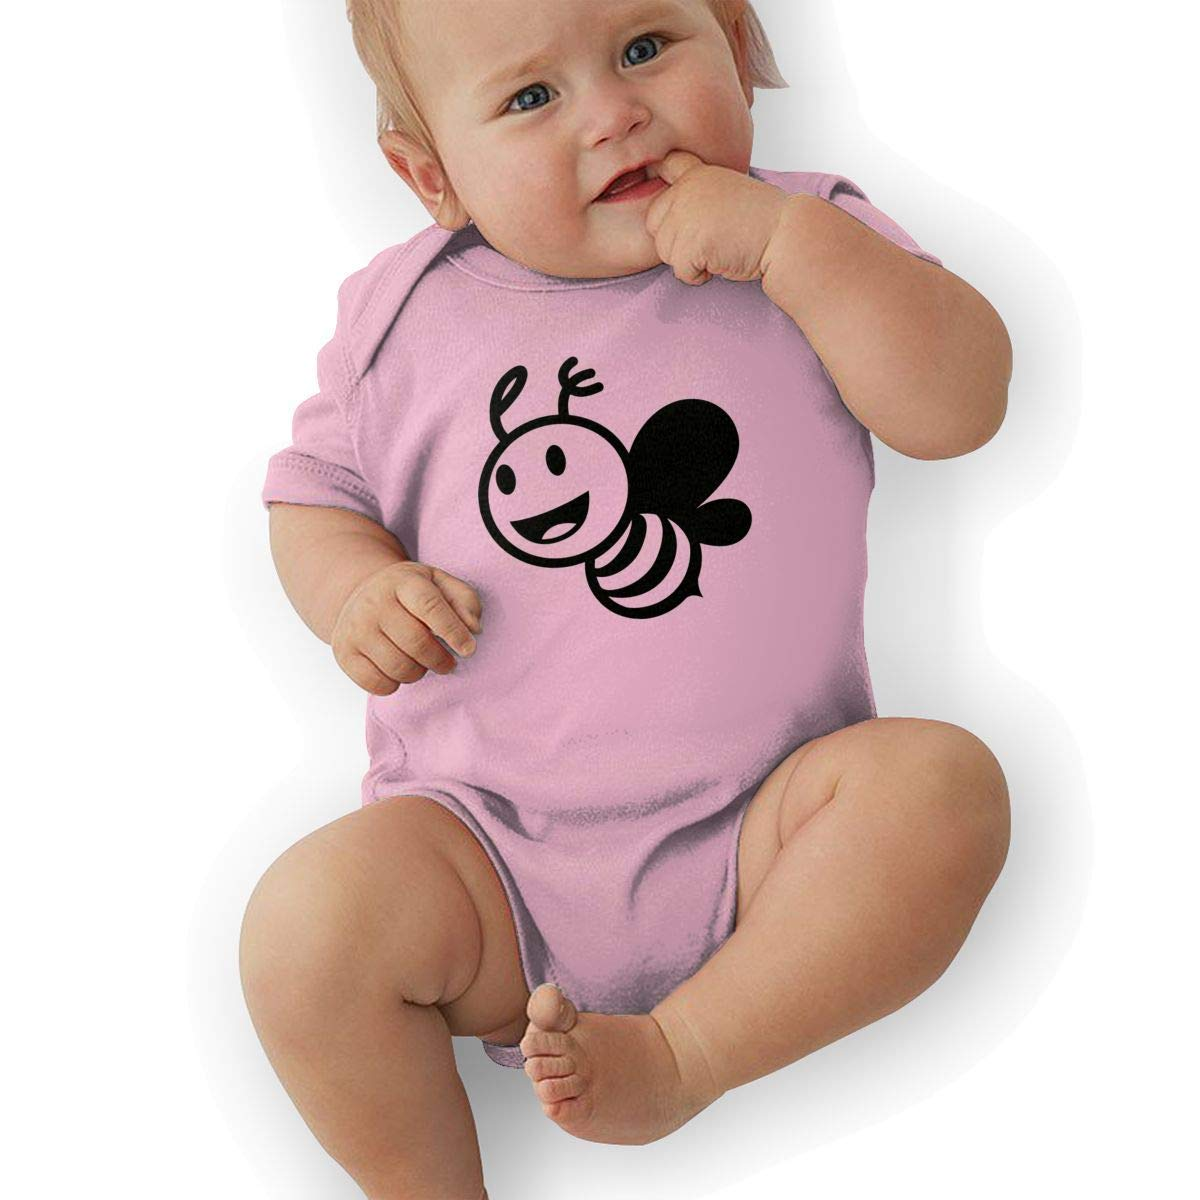 leihaeg Honey Bee Cartoon Baby Onesies Toddler Baby Girl//Boy Unisex Clothes Romper Jumpsuit Bodysuit One Piece